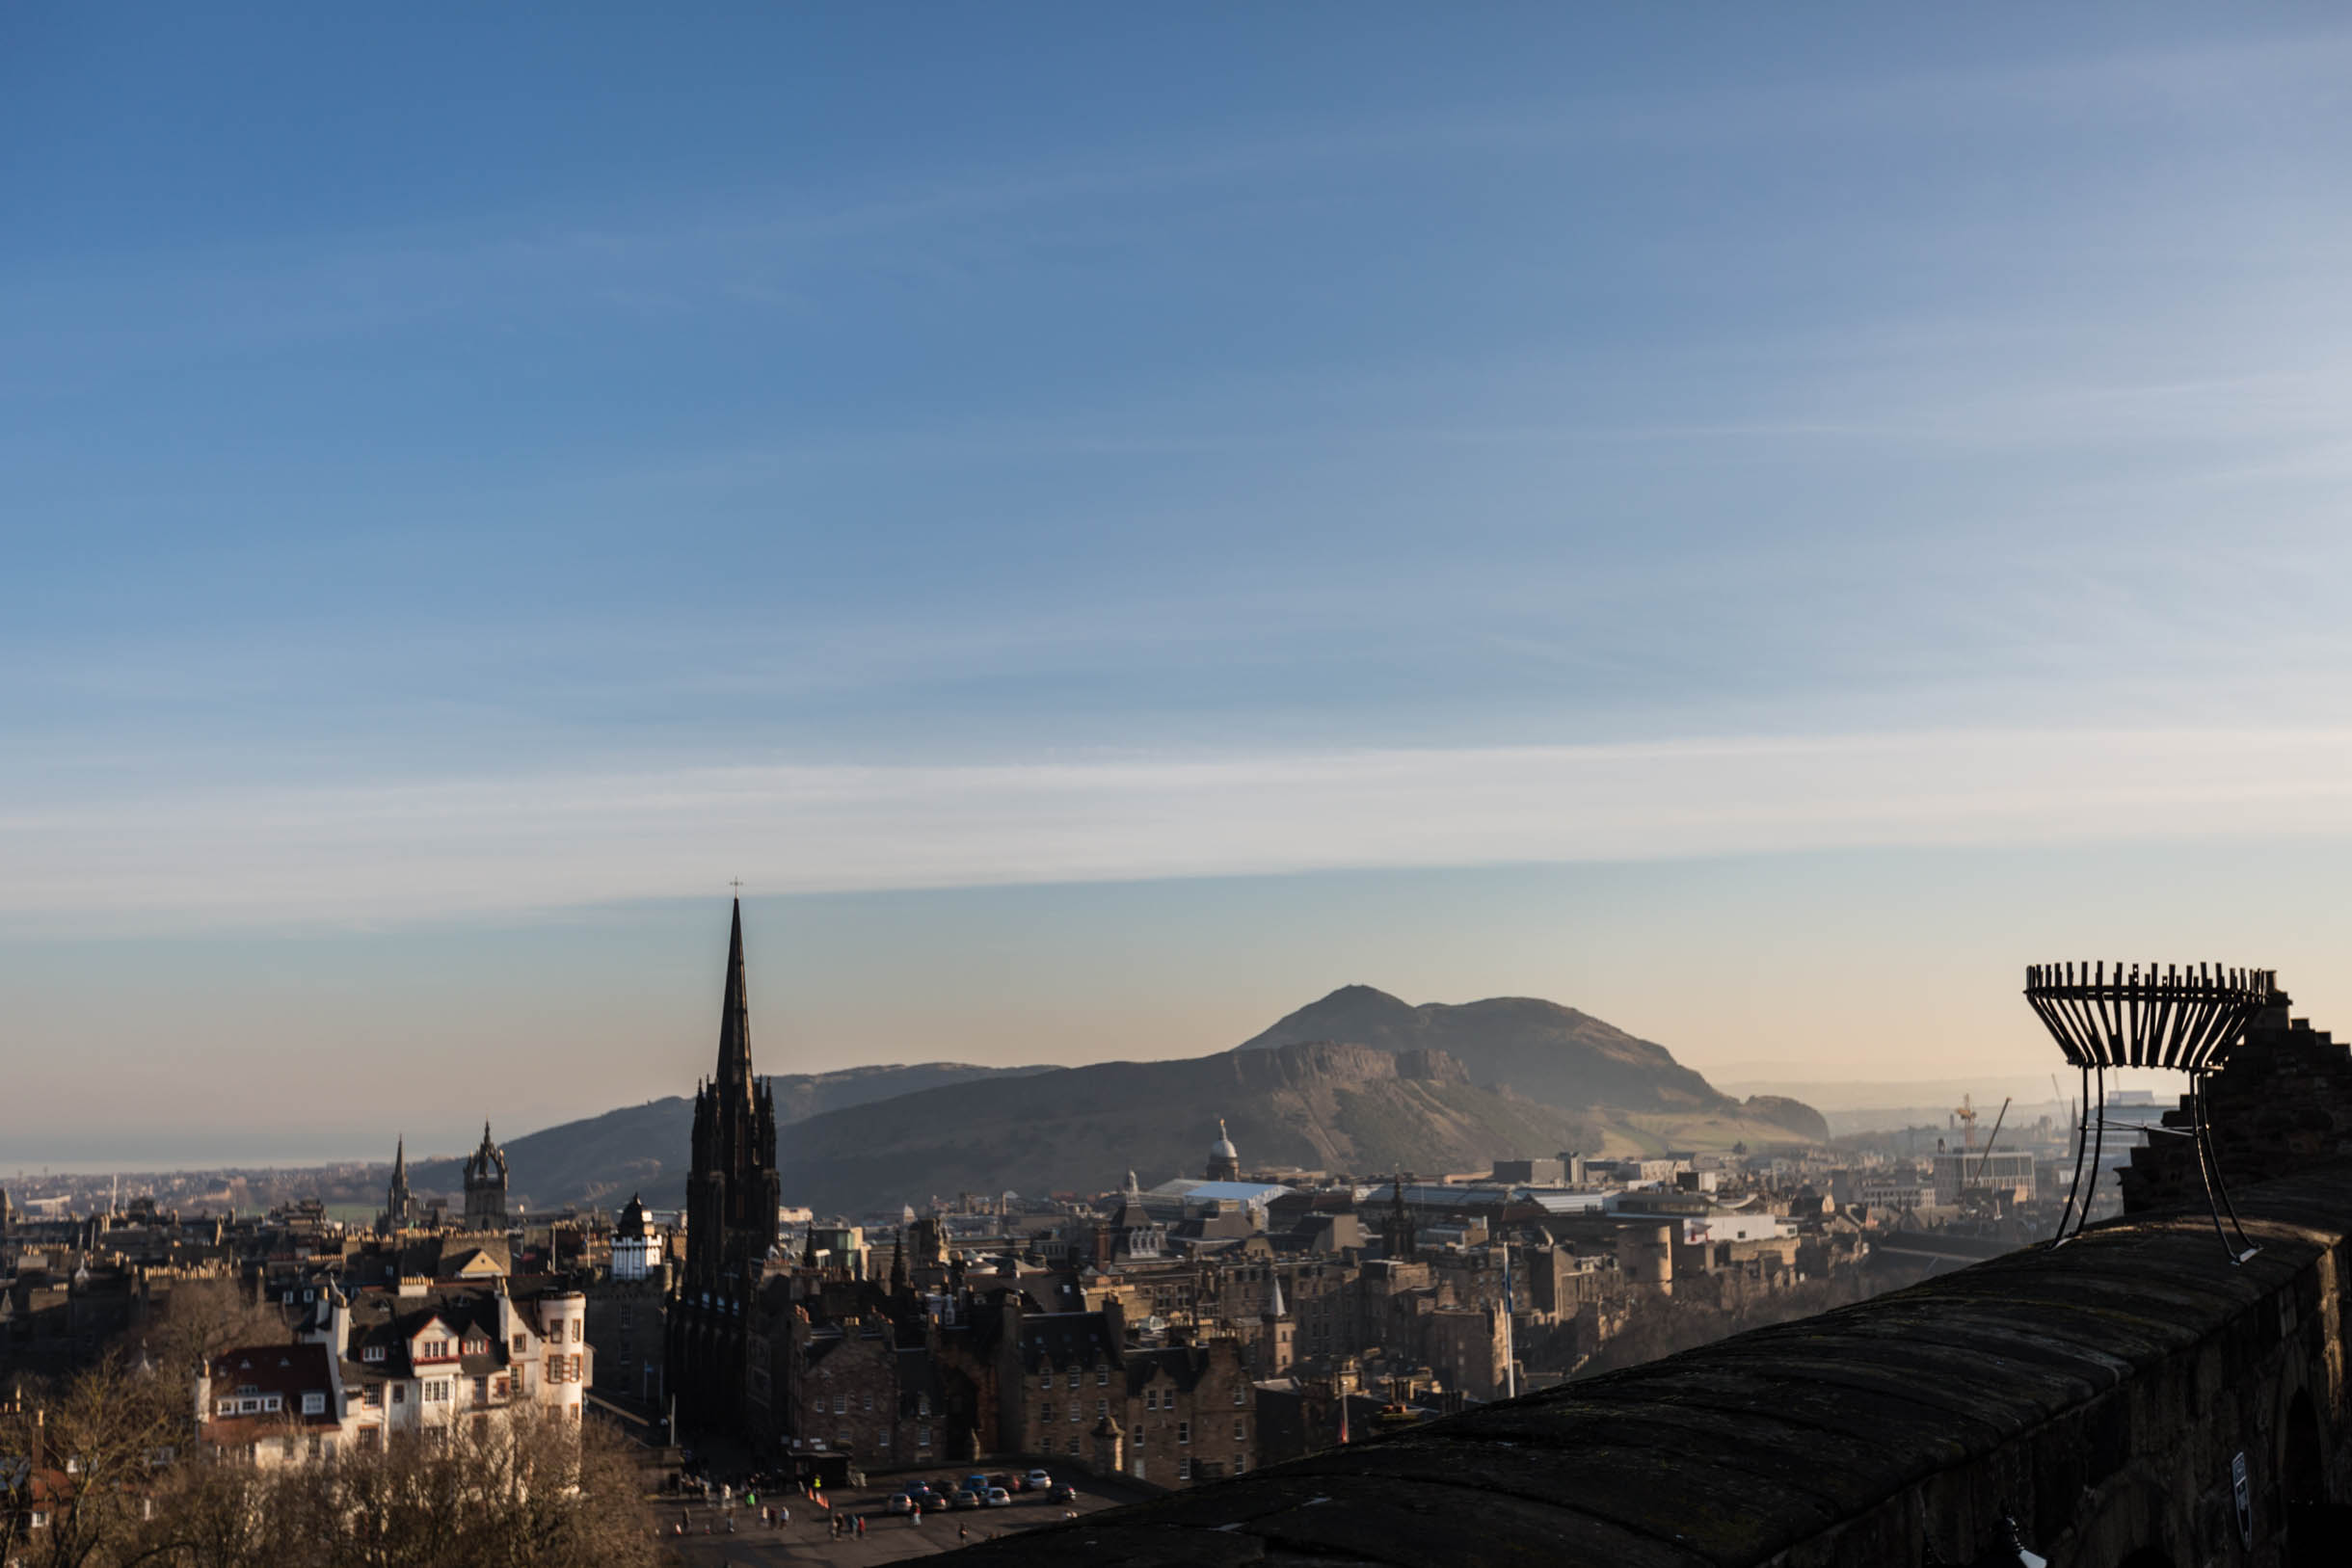 Picture Taken While Exploring Edinburgh - the view from edinburgh castle